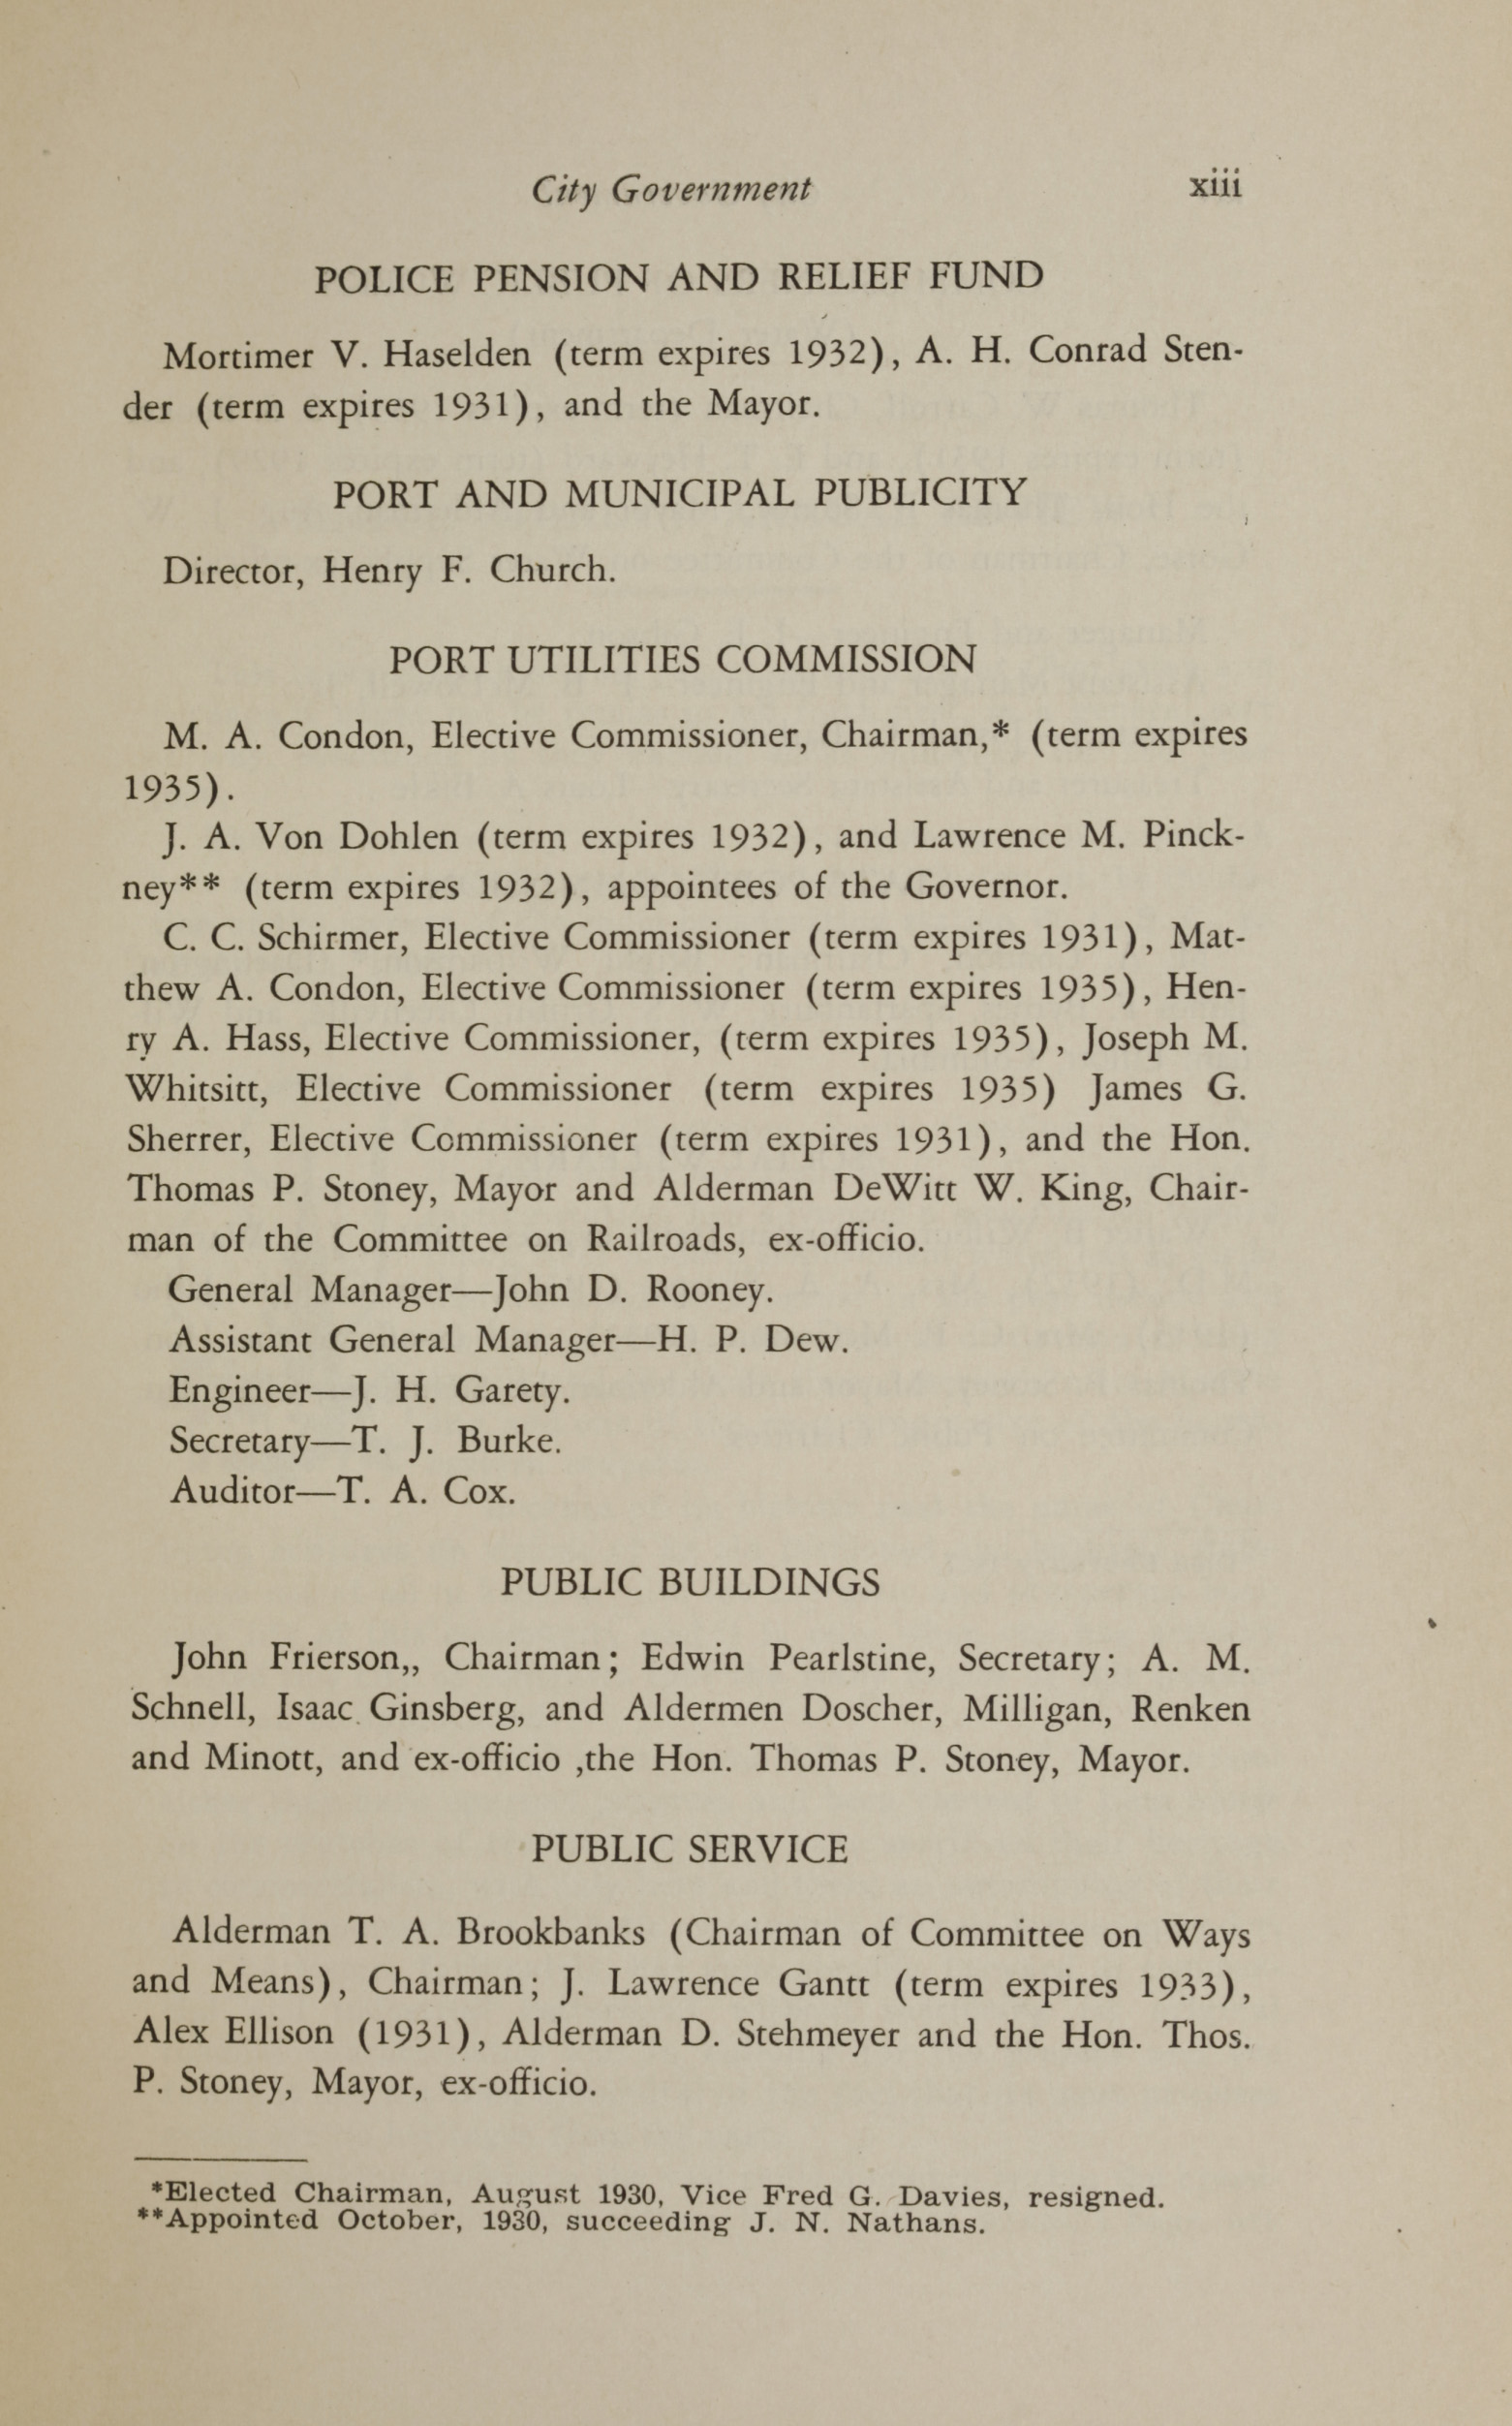 Charleston Yearbook, 1930, page xiii